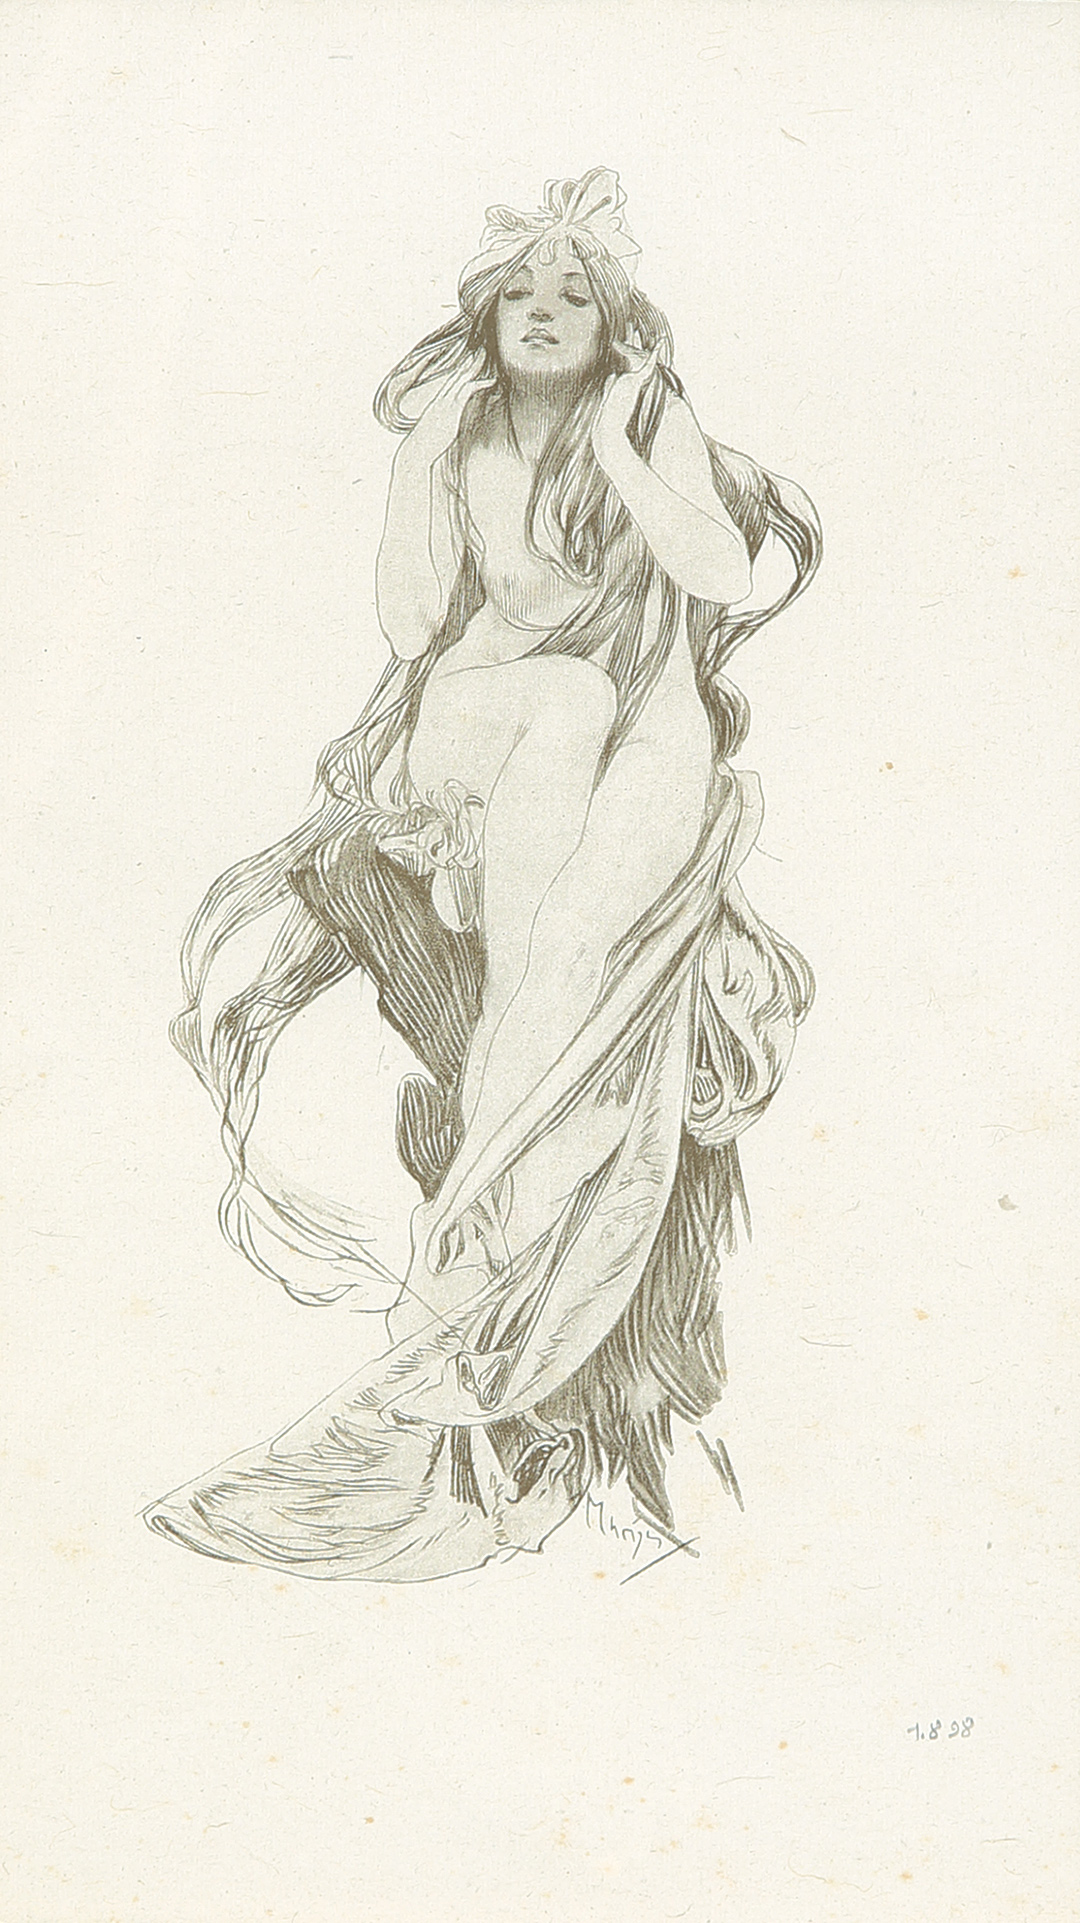 385. Seated Nude : Pencil Print. 1898.